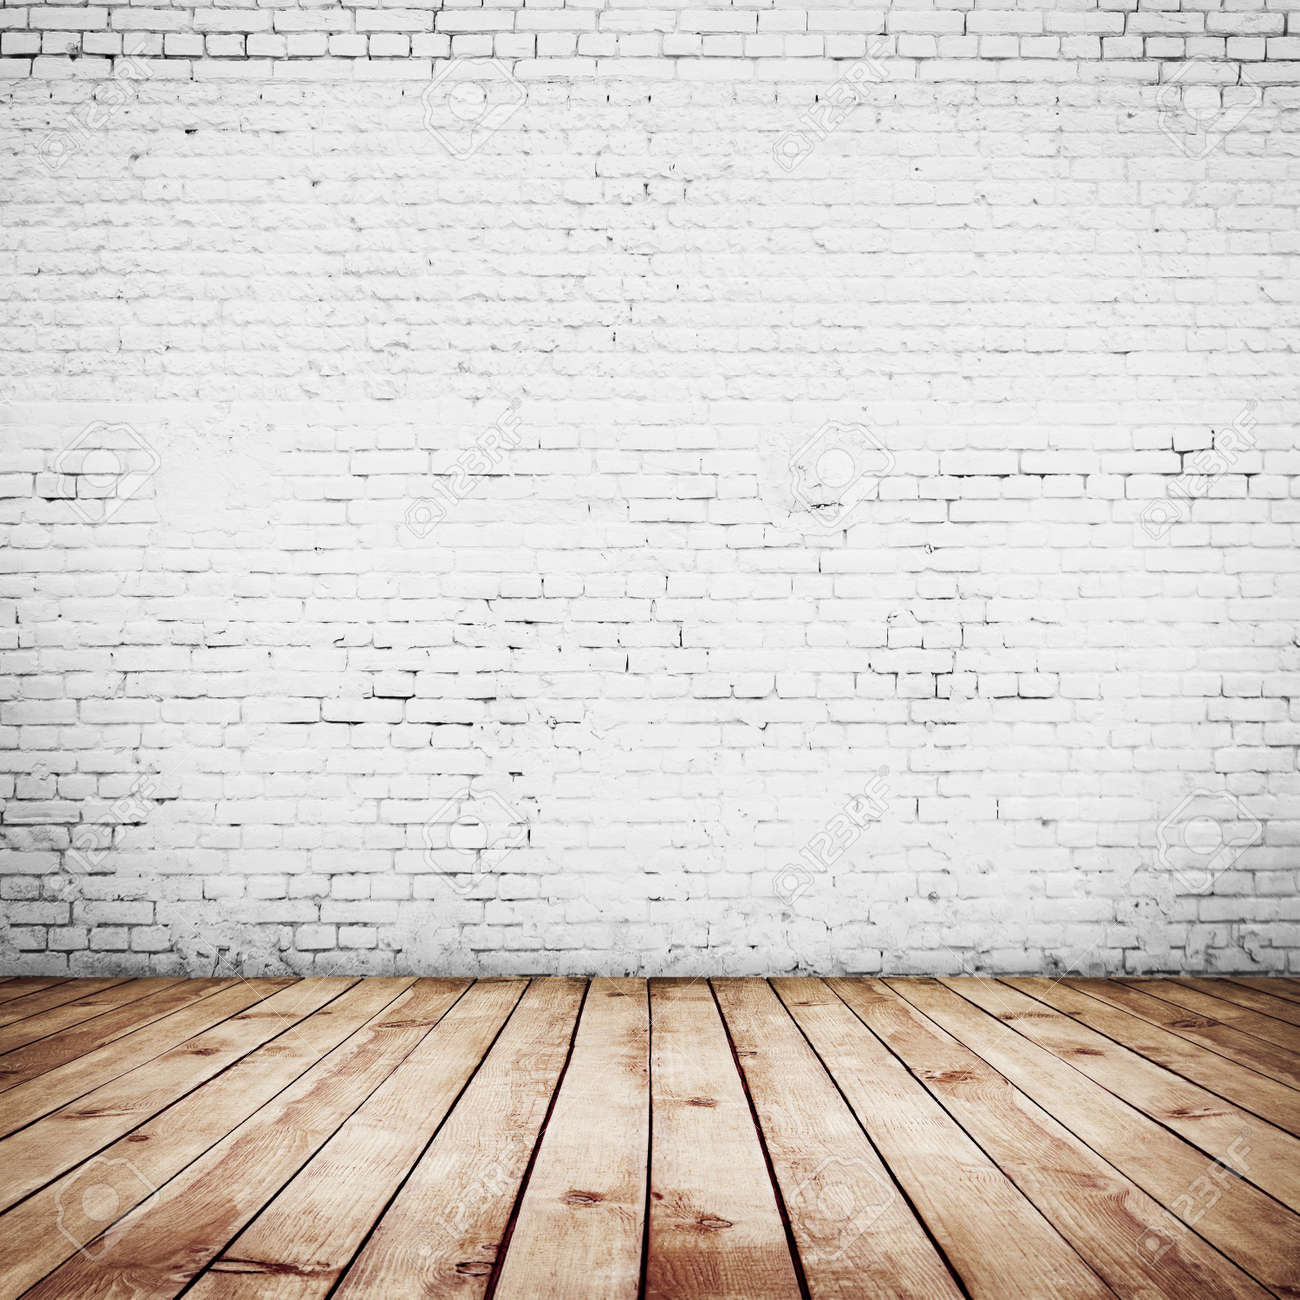 Stock Photo - room interior vintage with white brick wall and wood floor  background - Room Interior Vintage With White Brick Wall And Wood Floor